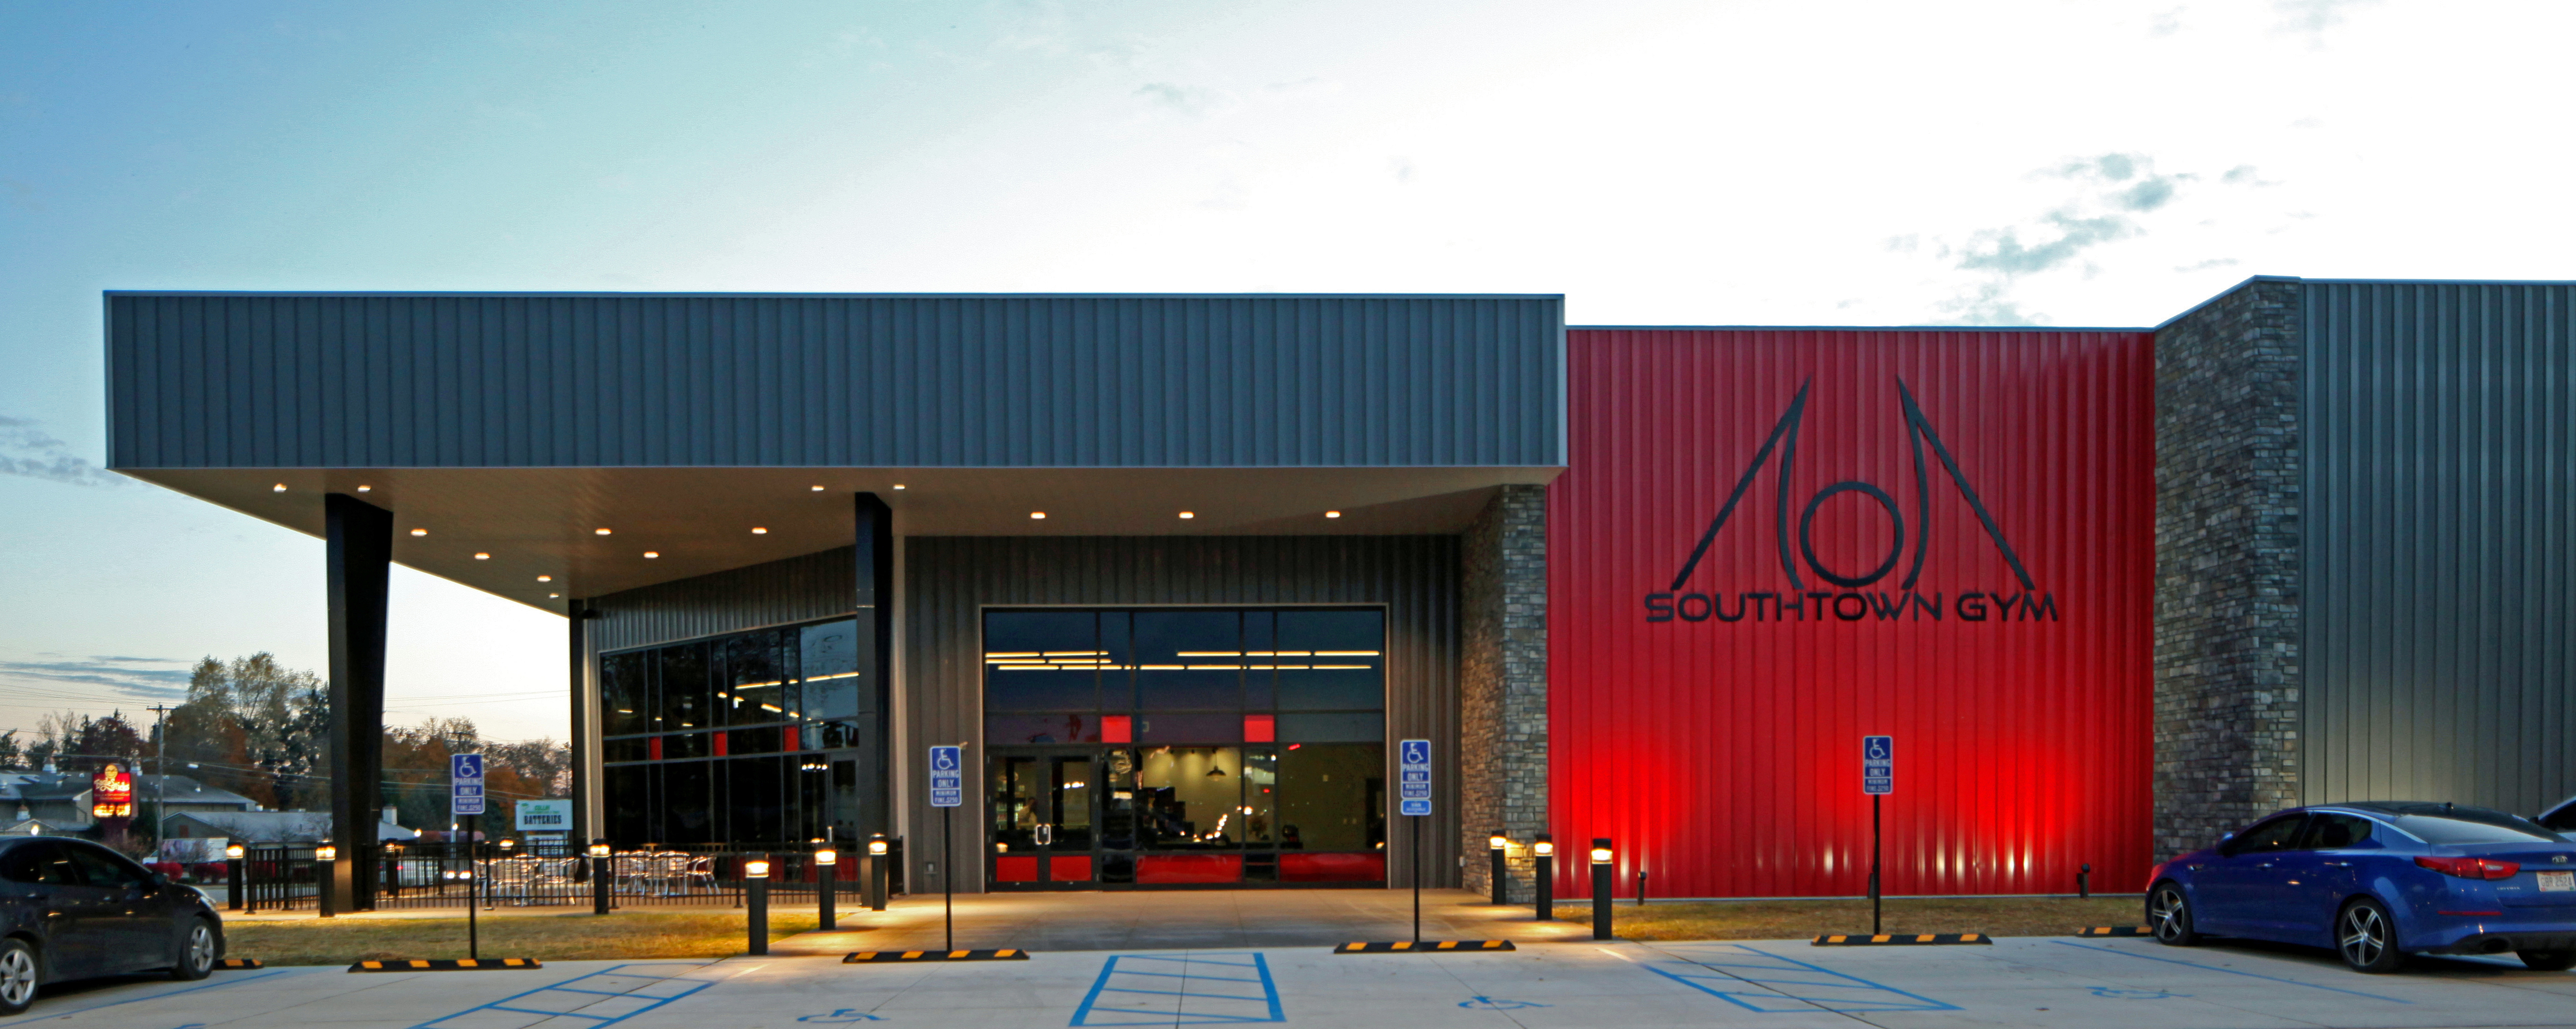 southtown-gym-zanesville-ohio-archtectural-apg-architects-fitness-center-steel-building-modern-industrial-branding-awesome